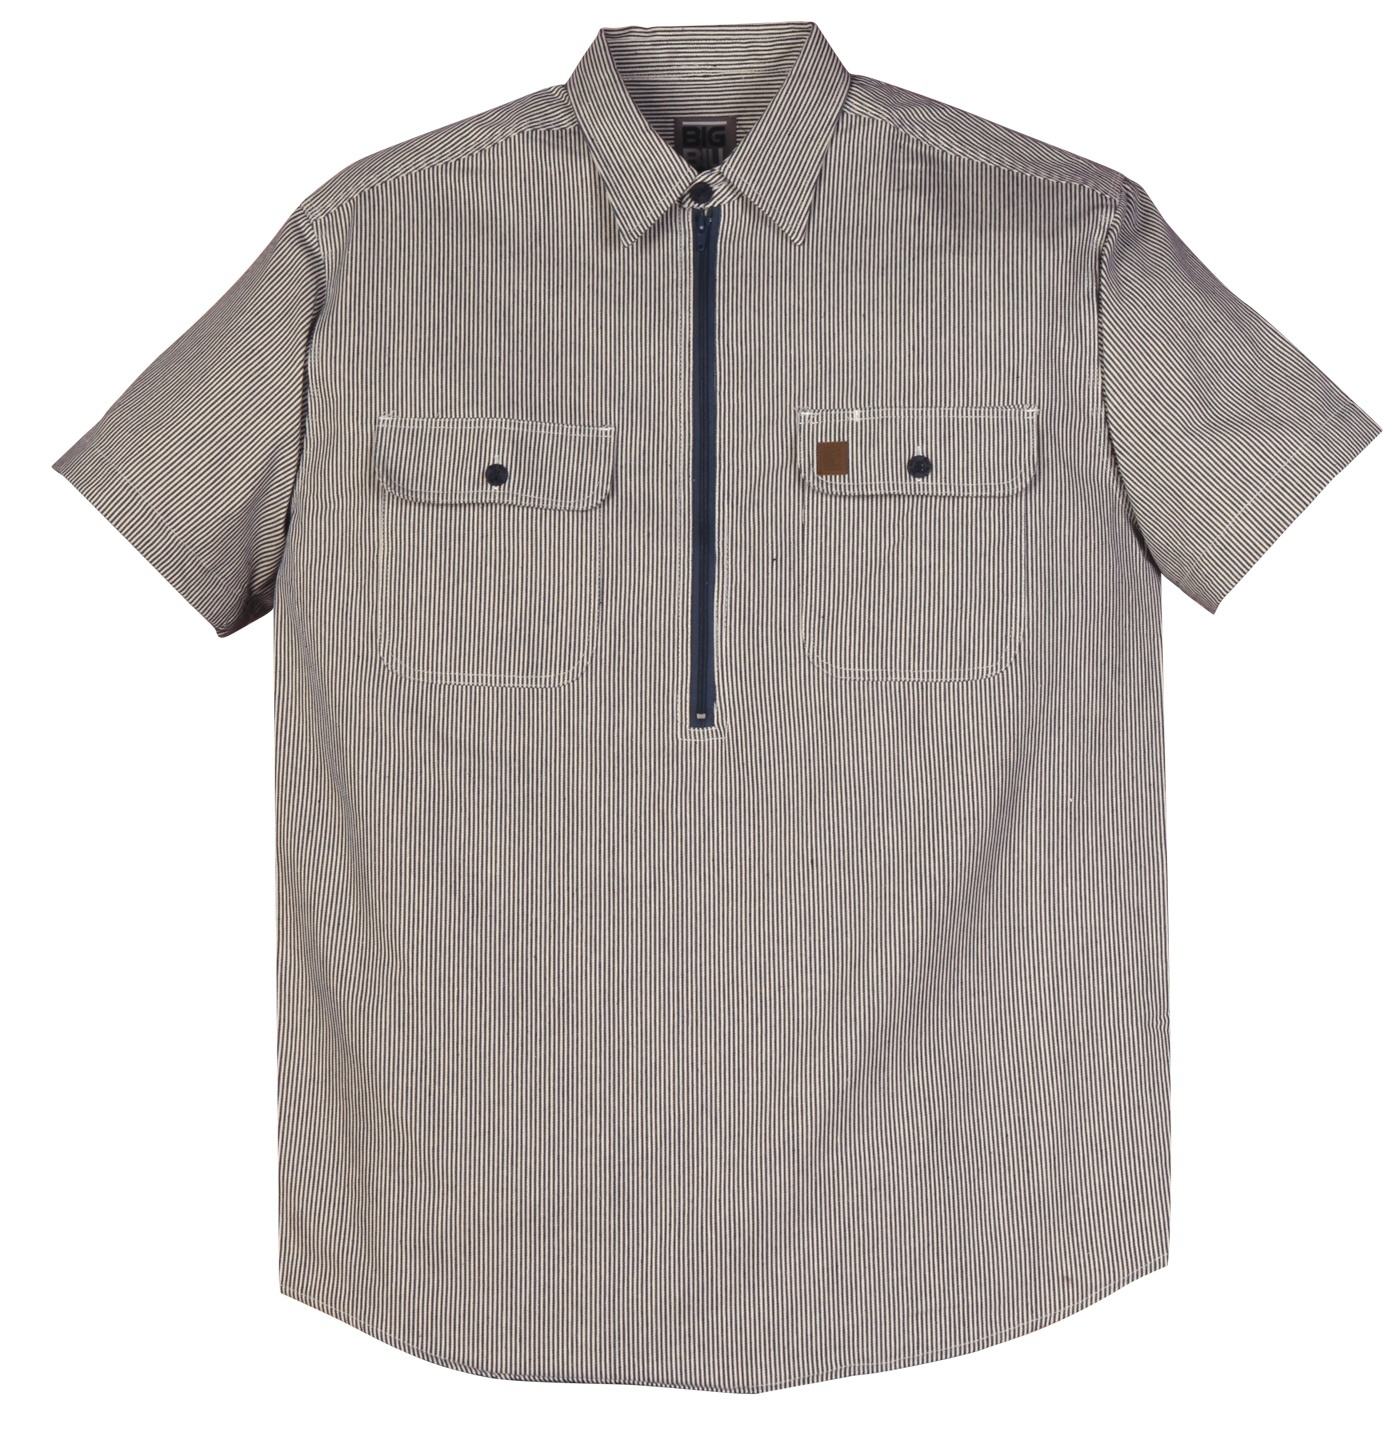 7 oz Hickory Stripe Zip Up Hickory Short Sleeve Shirt-